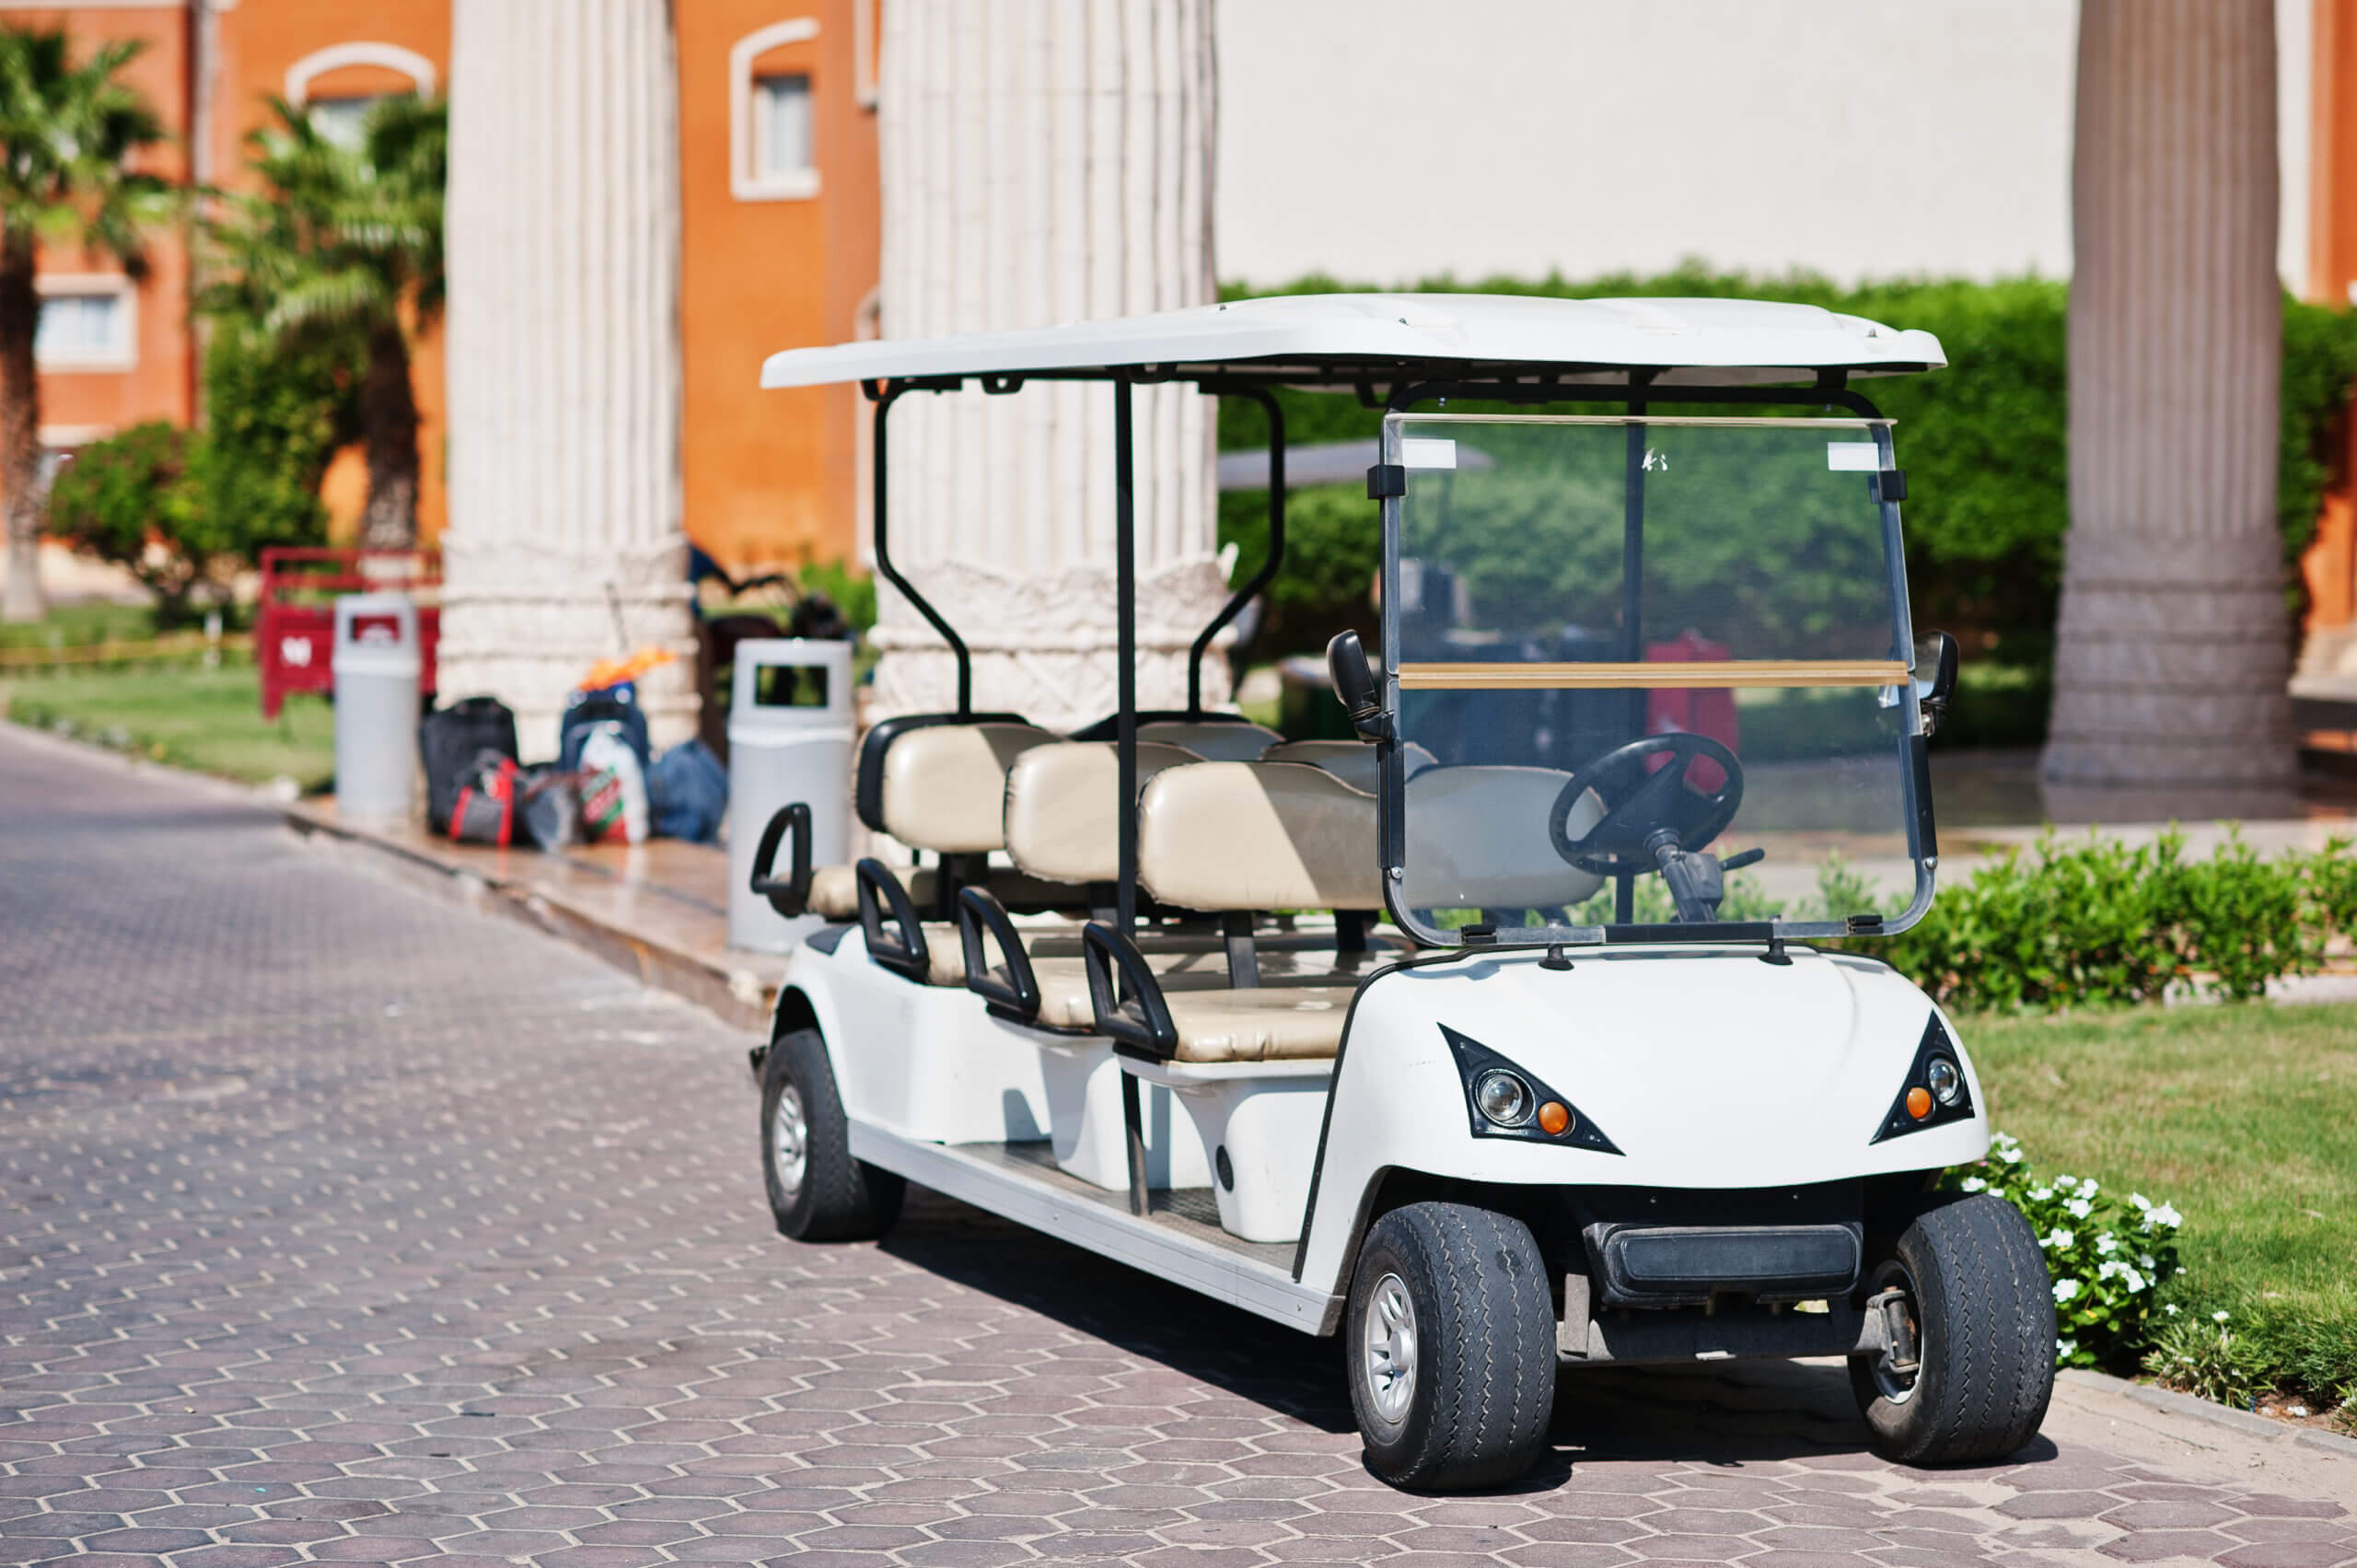 Hotel golf cart buggy batteries